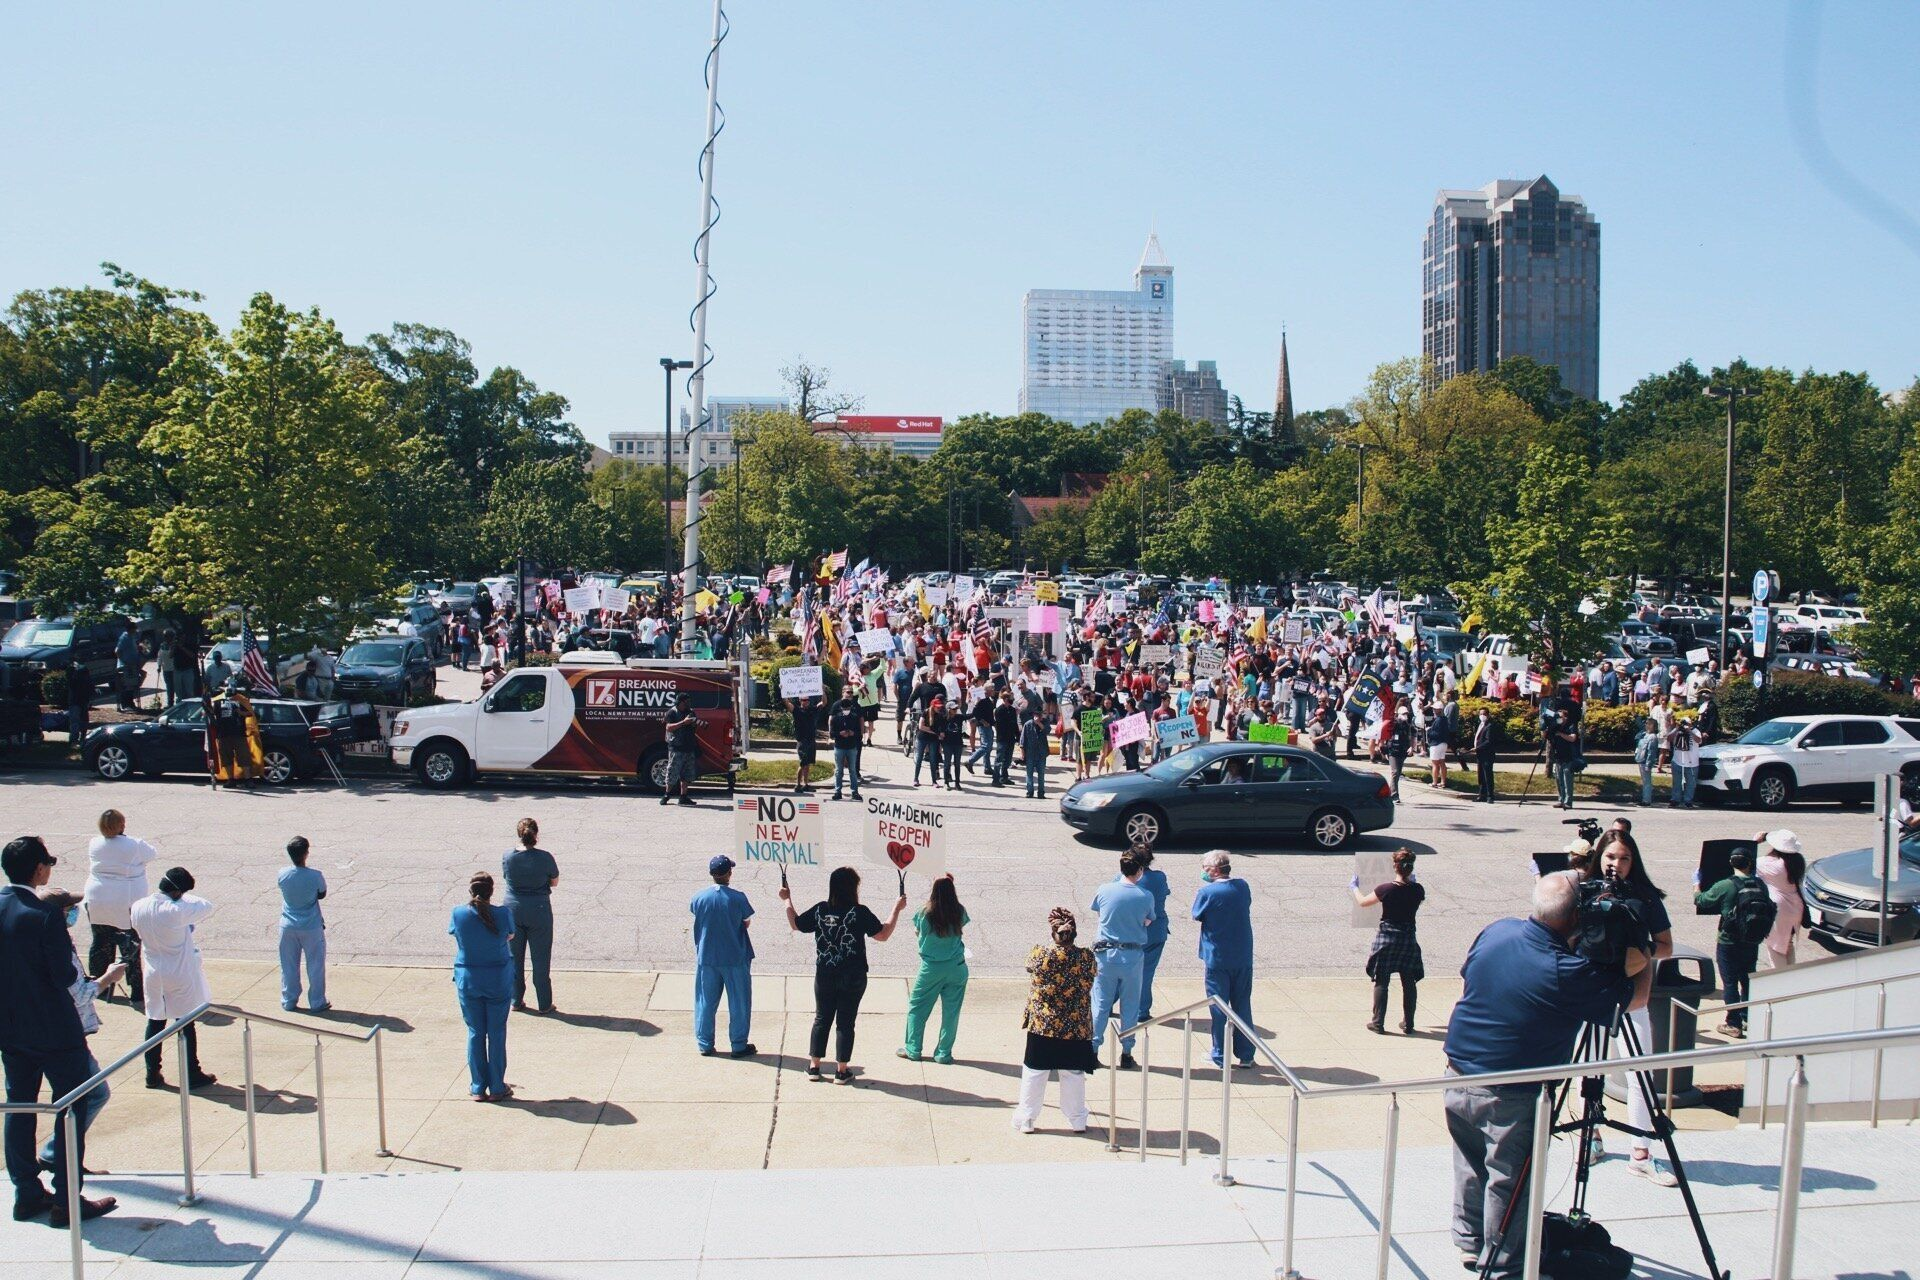 """Health care workers at their counterprotest across from the""""ReOpen NC"""" rally in Raleigh."""